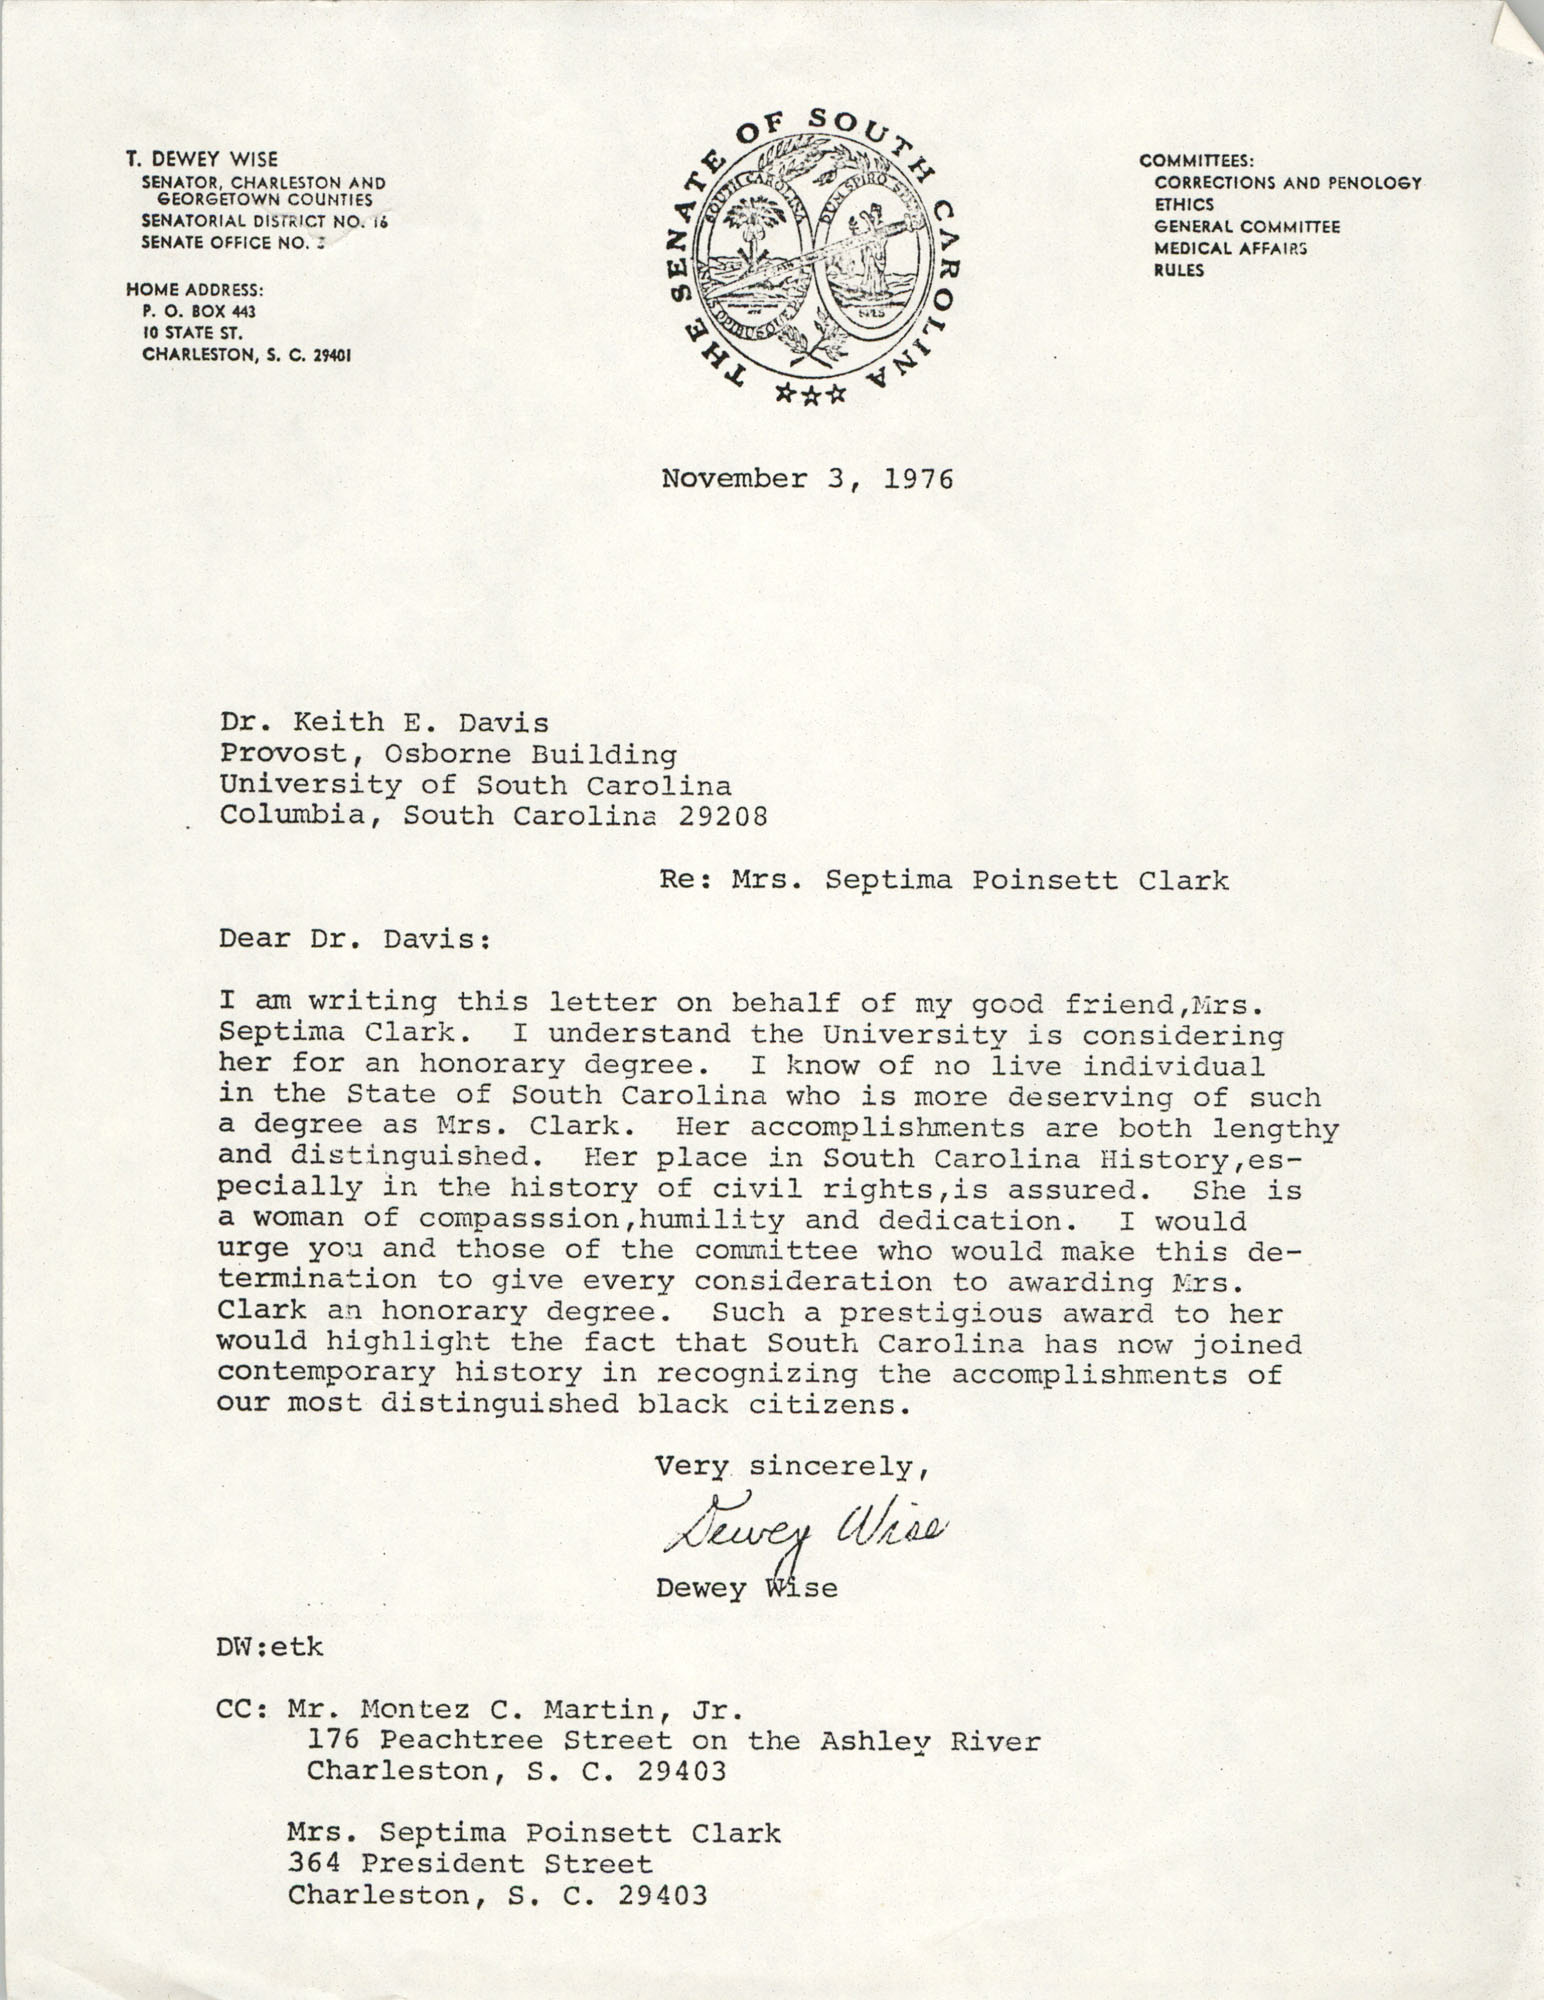 Letter from Dewey Wise to Keith E. Davis, November 3, 1976